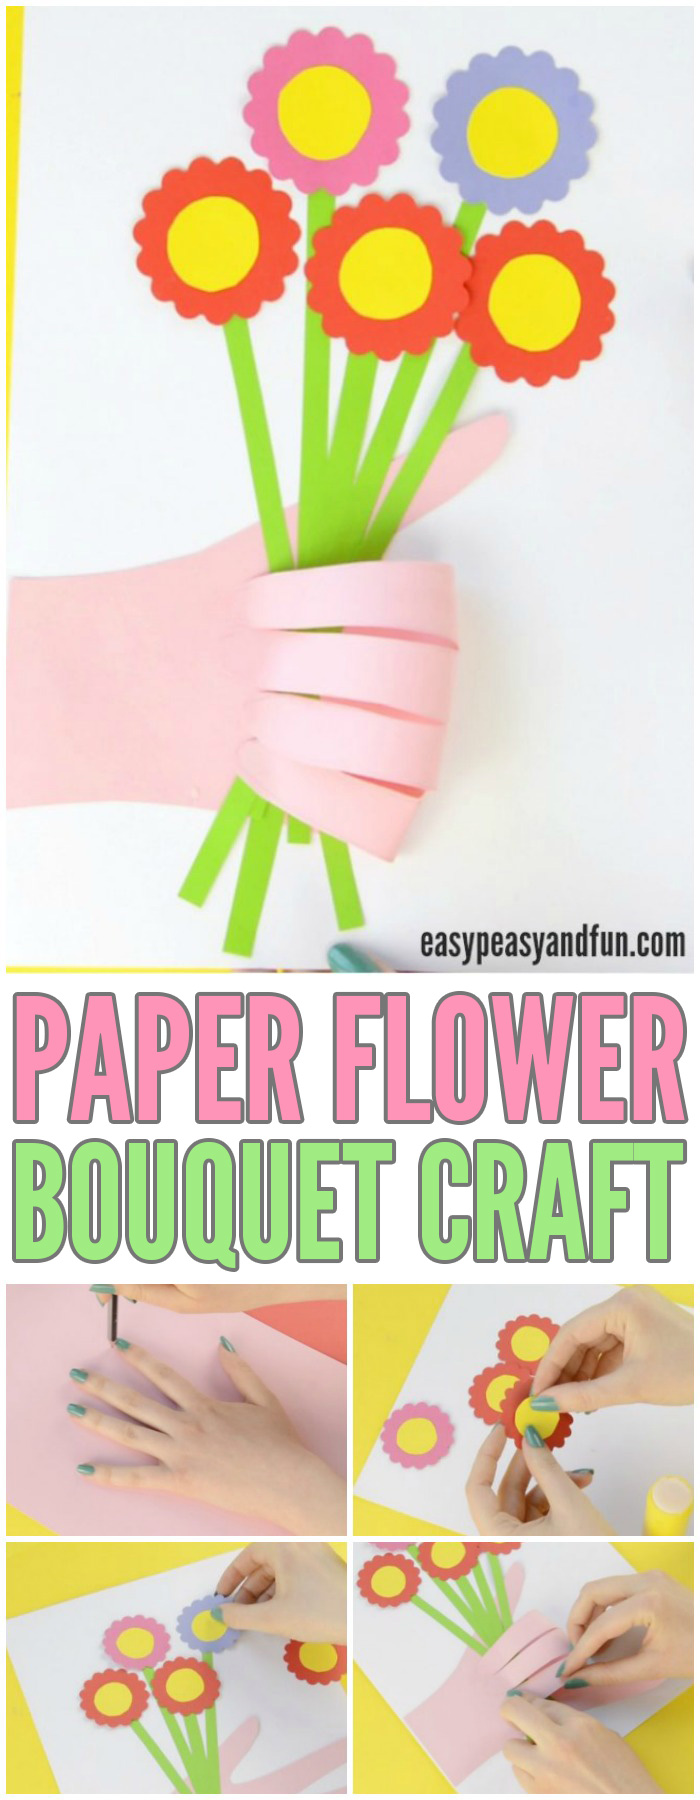 Adorable Handprint Flower Craft for Kids to Make #craftsforkids #Mothersdaycrafts #activitiesforkids